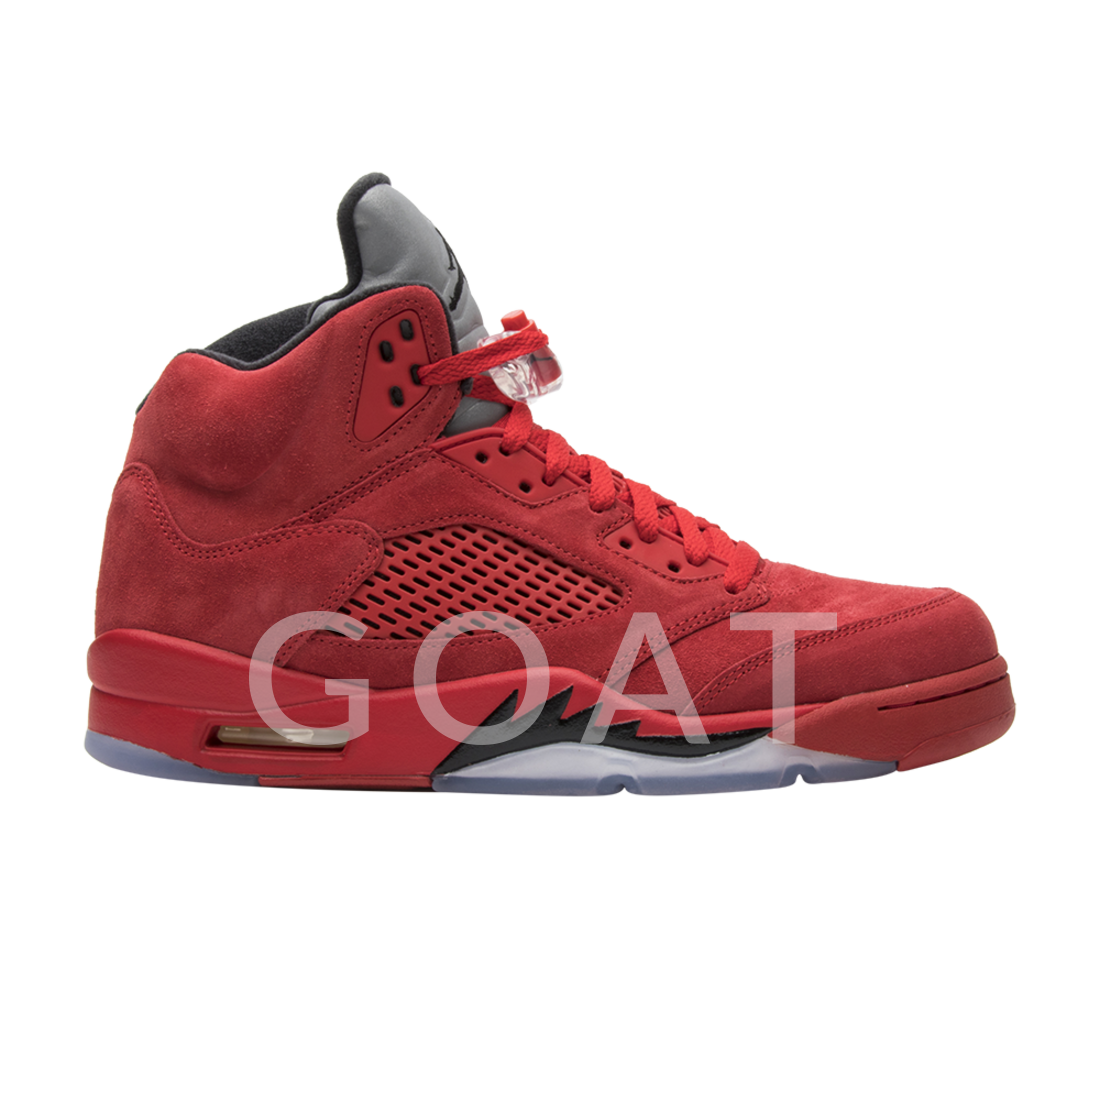 GOAT The safest way to buy and sell sneakers. Red